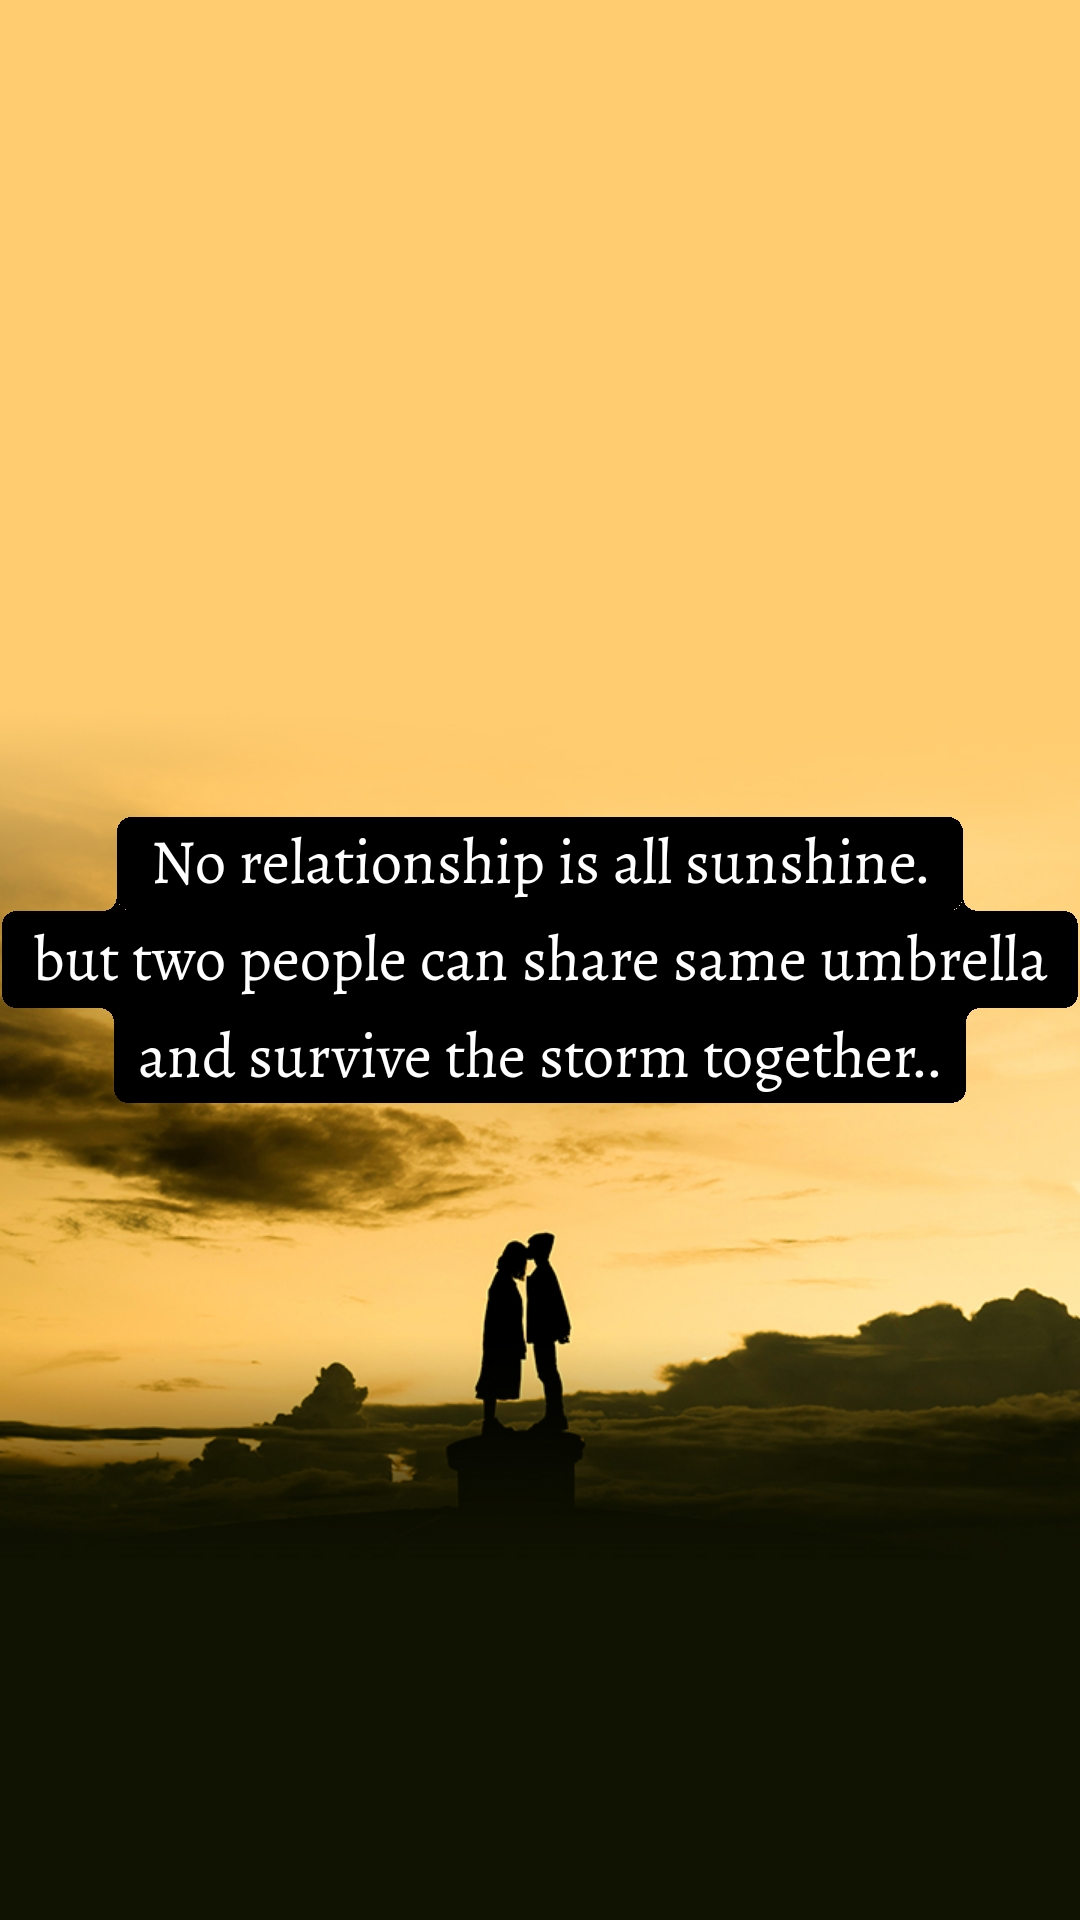 No relationship is all sunshine. but two people can share same umbrella and survive the storm together..